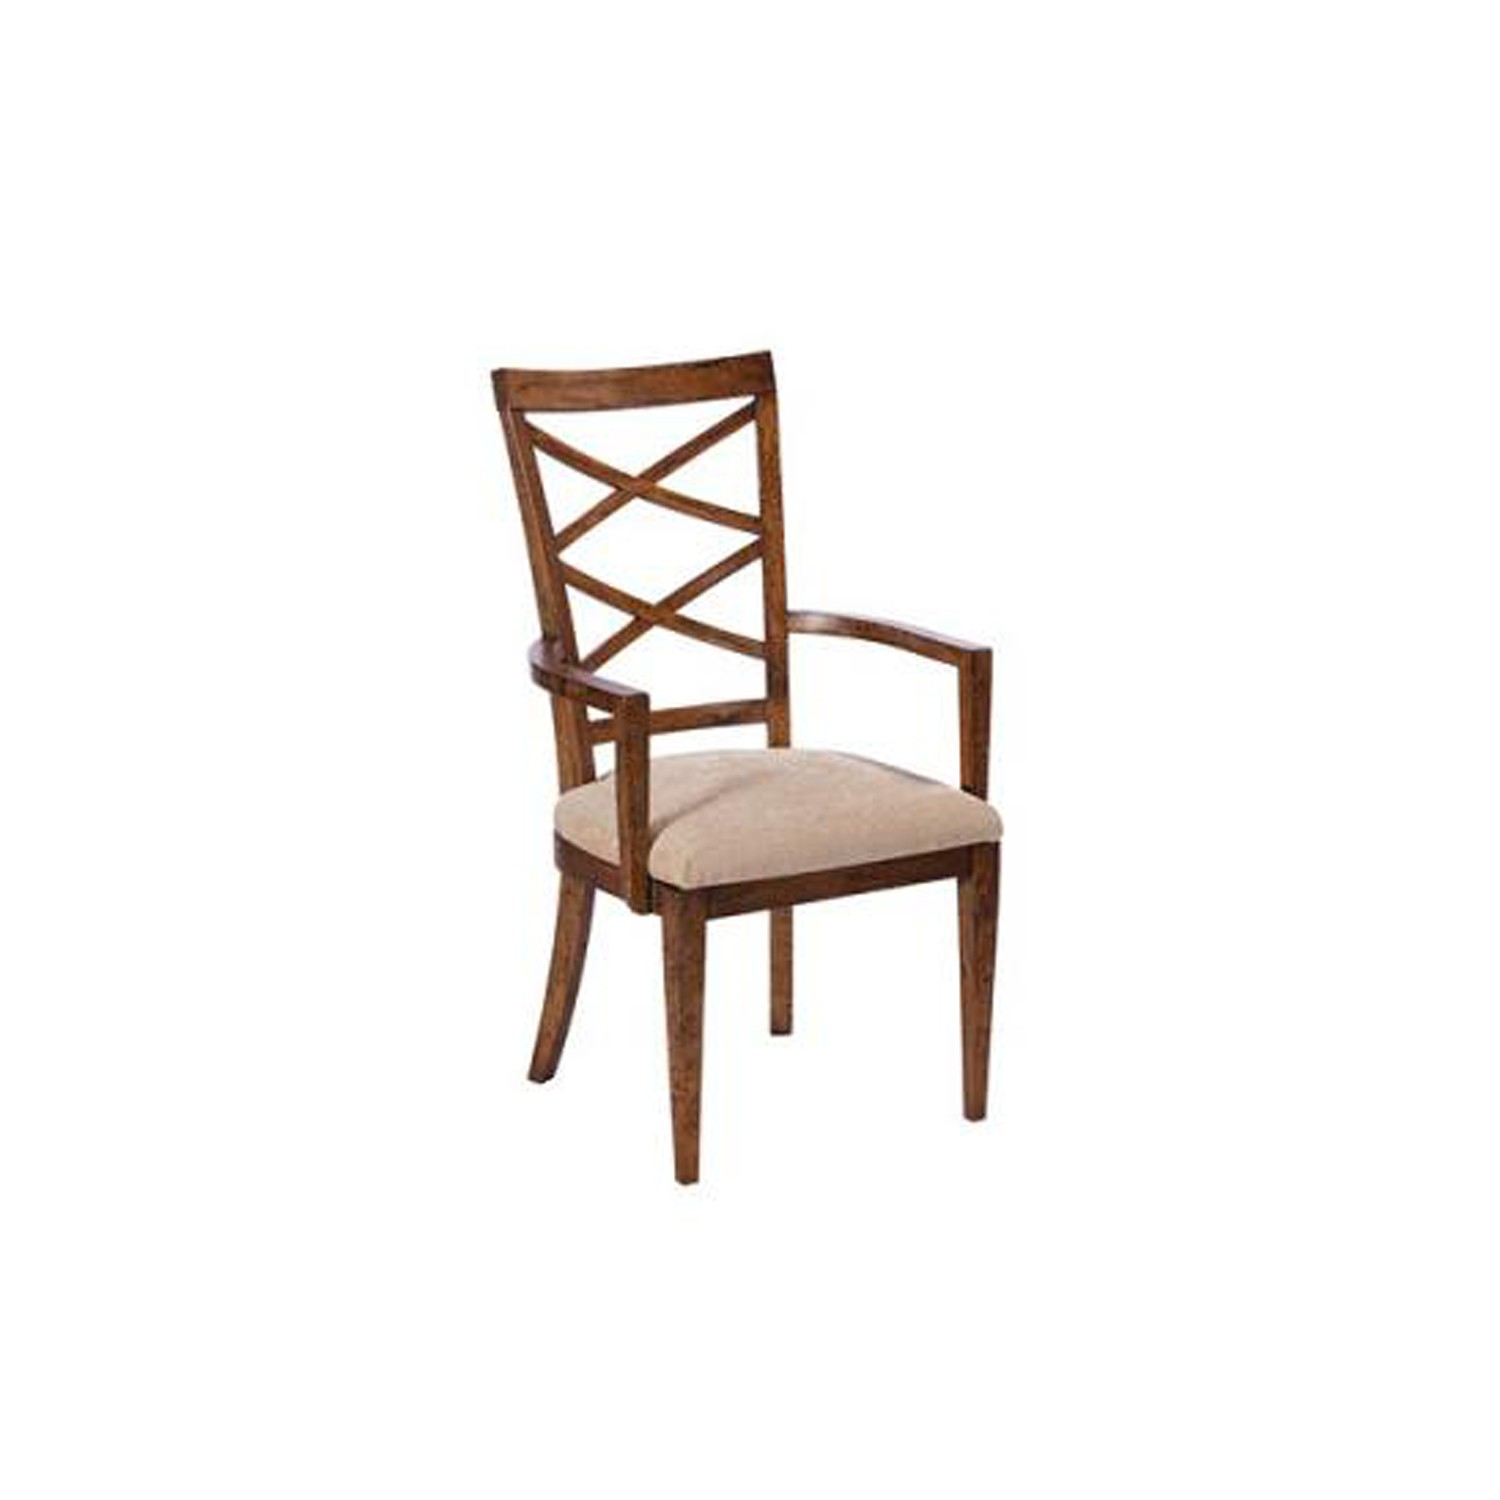 Mango Creek Beidermeier Dining Chair with Arms : 574921l from www.parkfurnishers.co.uk size 1500 x 1500 jpeg 80kB